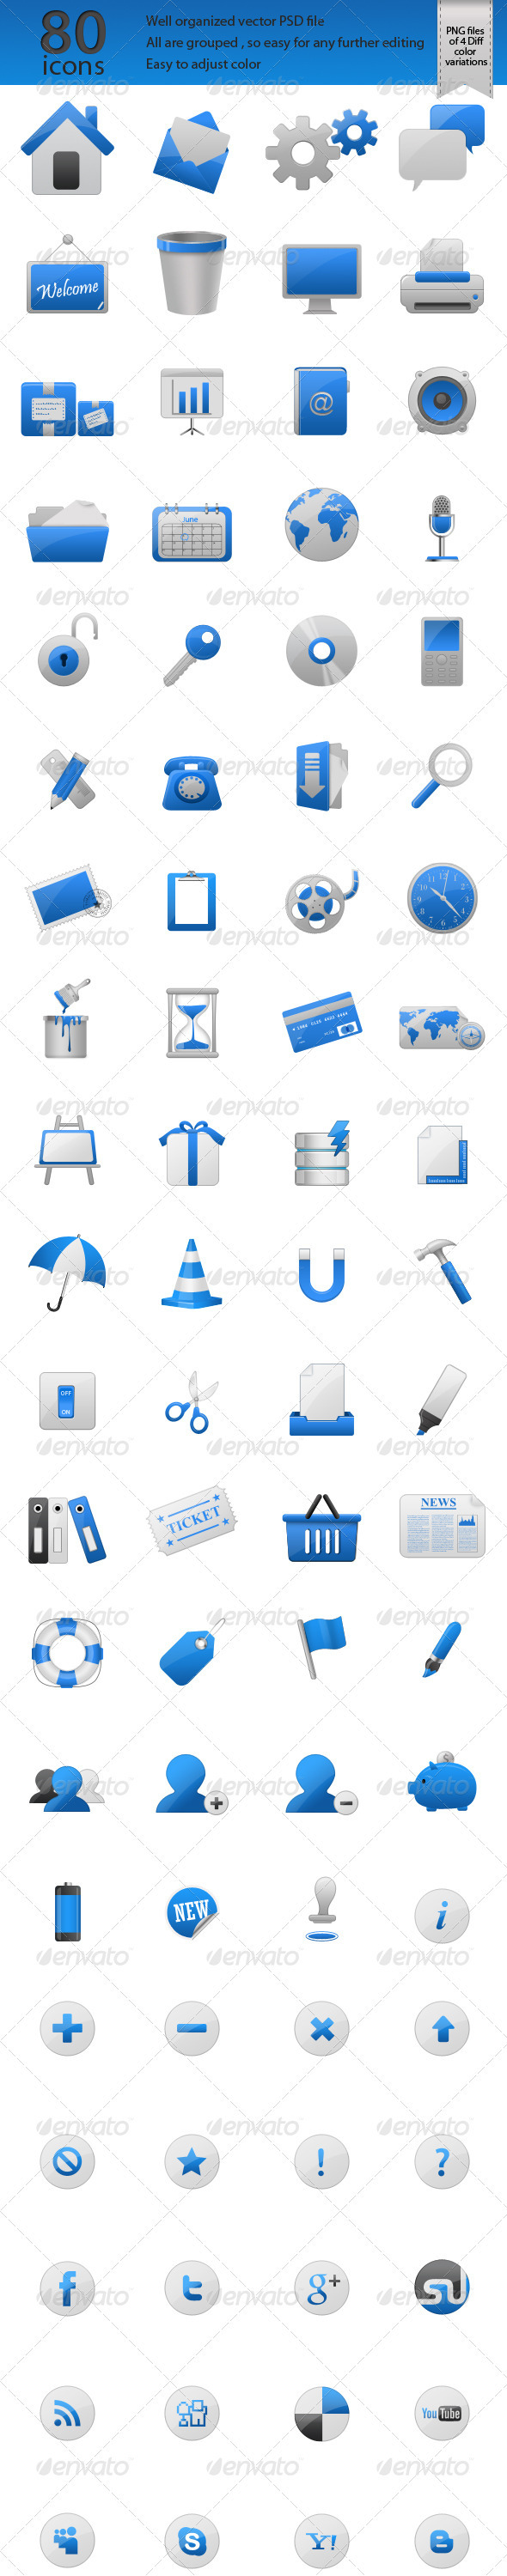 GraphicRiver 80 Glossy Web Icons 555887